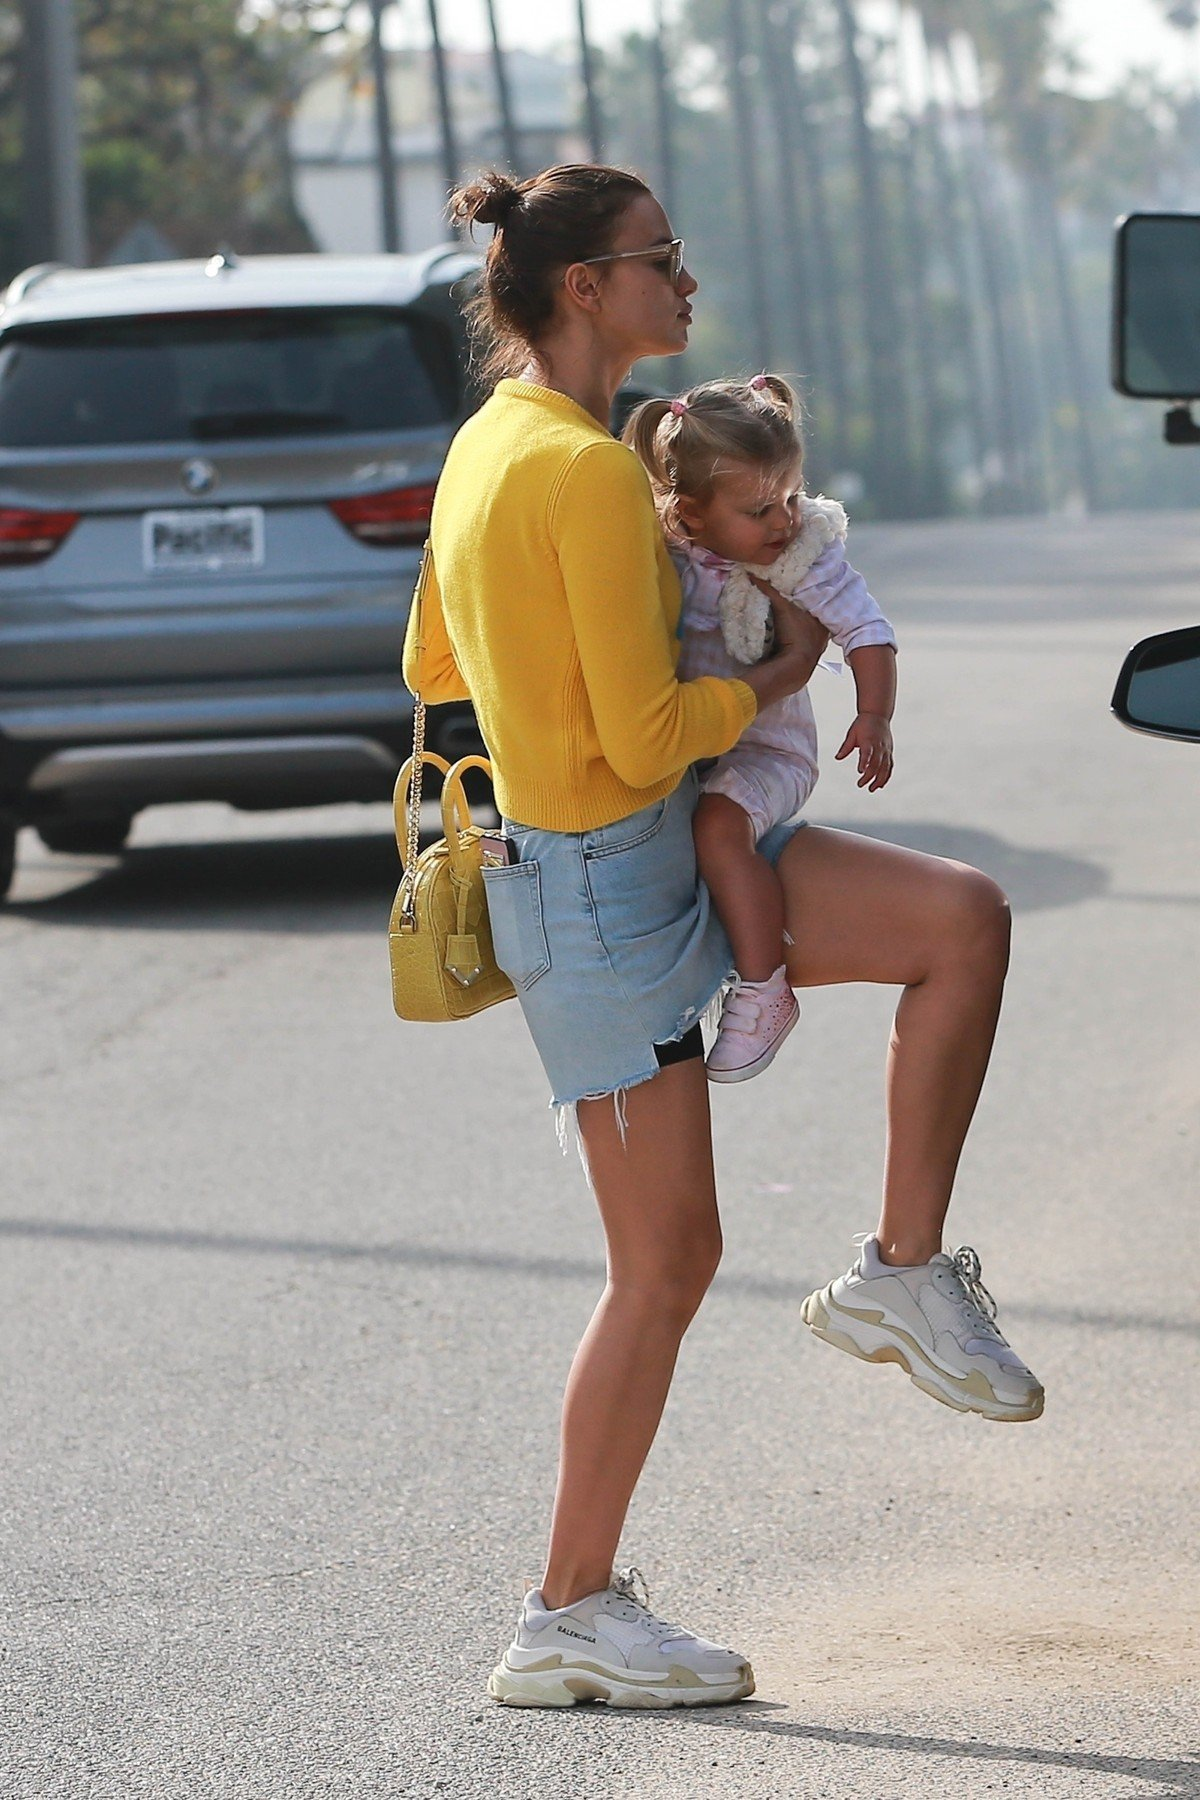 Studio City, CA  - *EXCLUSIVE*  - Model, Irina Shayk's daughter, Lea De Seine Shayk Cooper, is not having it at the Farmer's market. The 1-year-old throws what appears to be a tantrum while mom carries her away into their ride.  Pictured: Irina Shayk    *UK Clients - Pictures Containing Children Please Pixelate Face Prior To Publication*, Image: 404081096, License: Rights-managed, Restrictions: , Model Release: no, Credit line: Profimedia, AKM-GSI